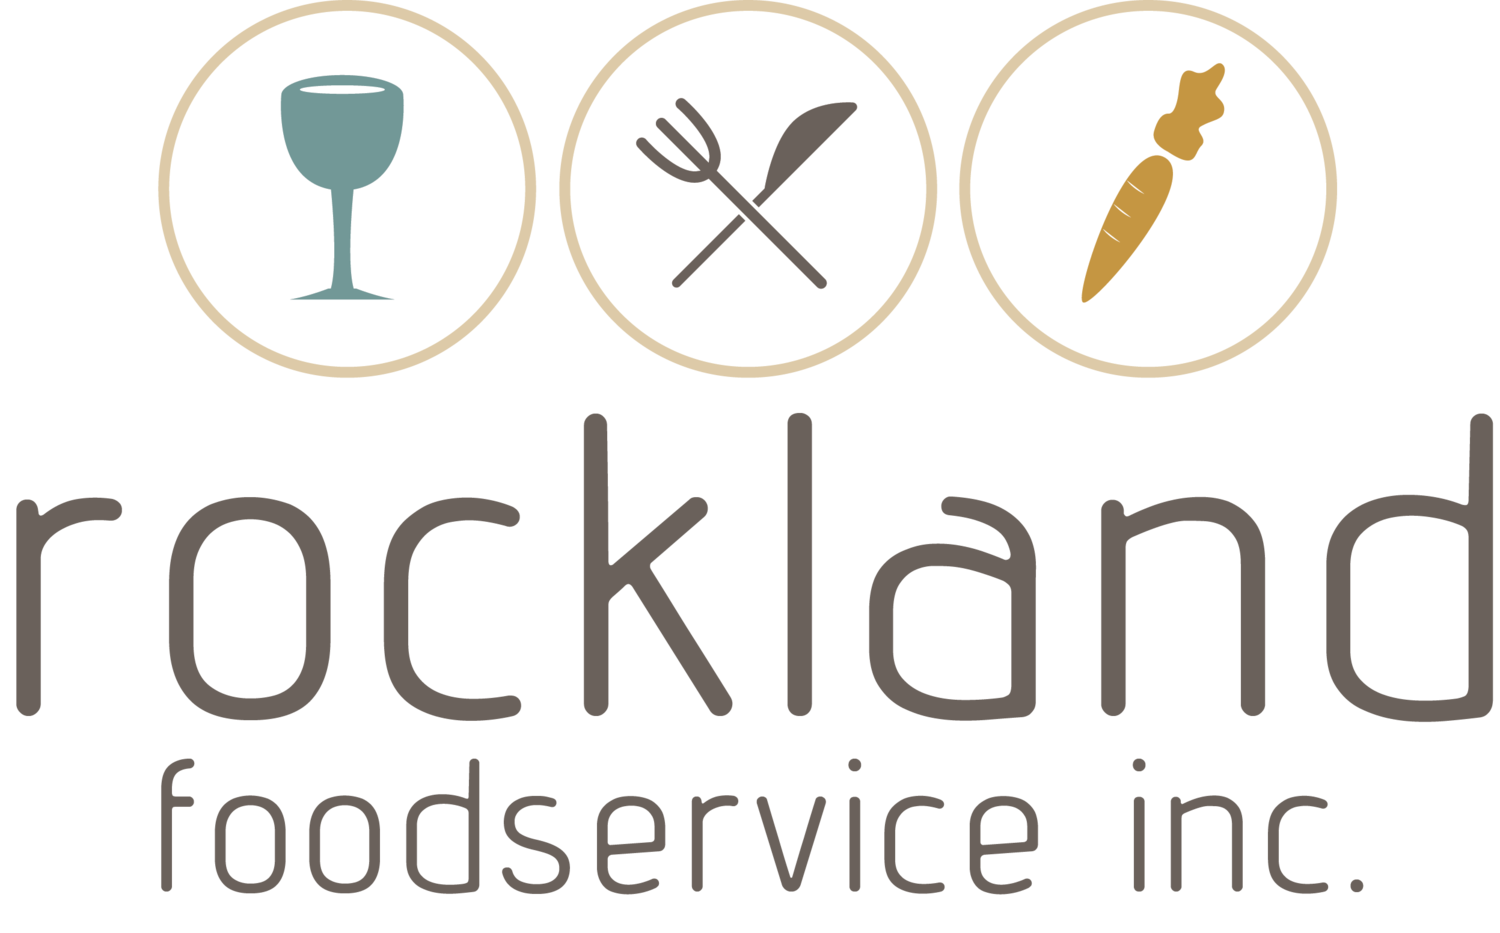 Rockland Foodservice, Inc.